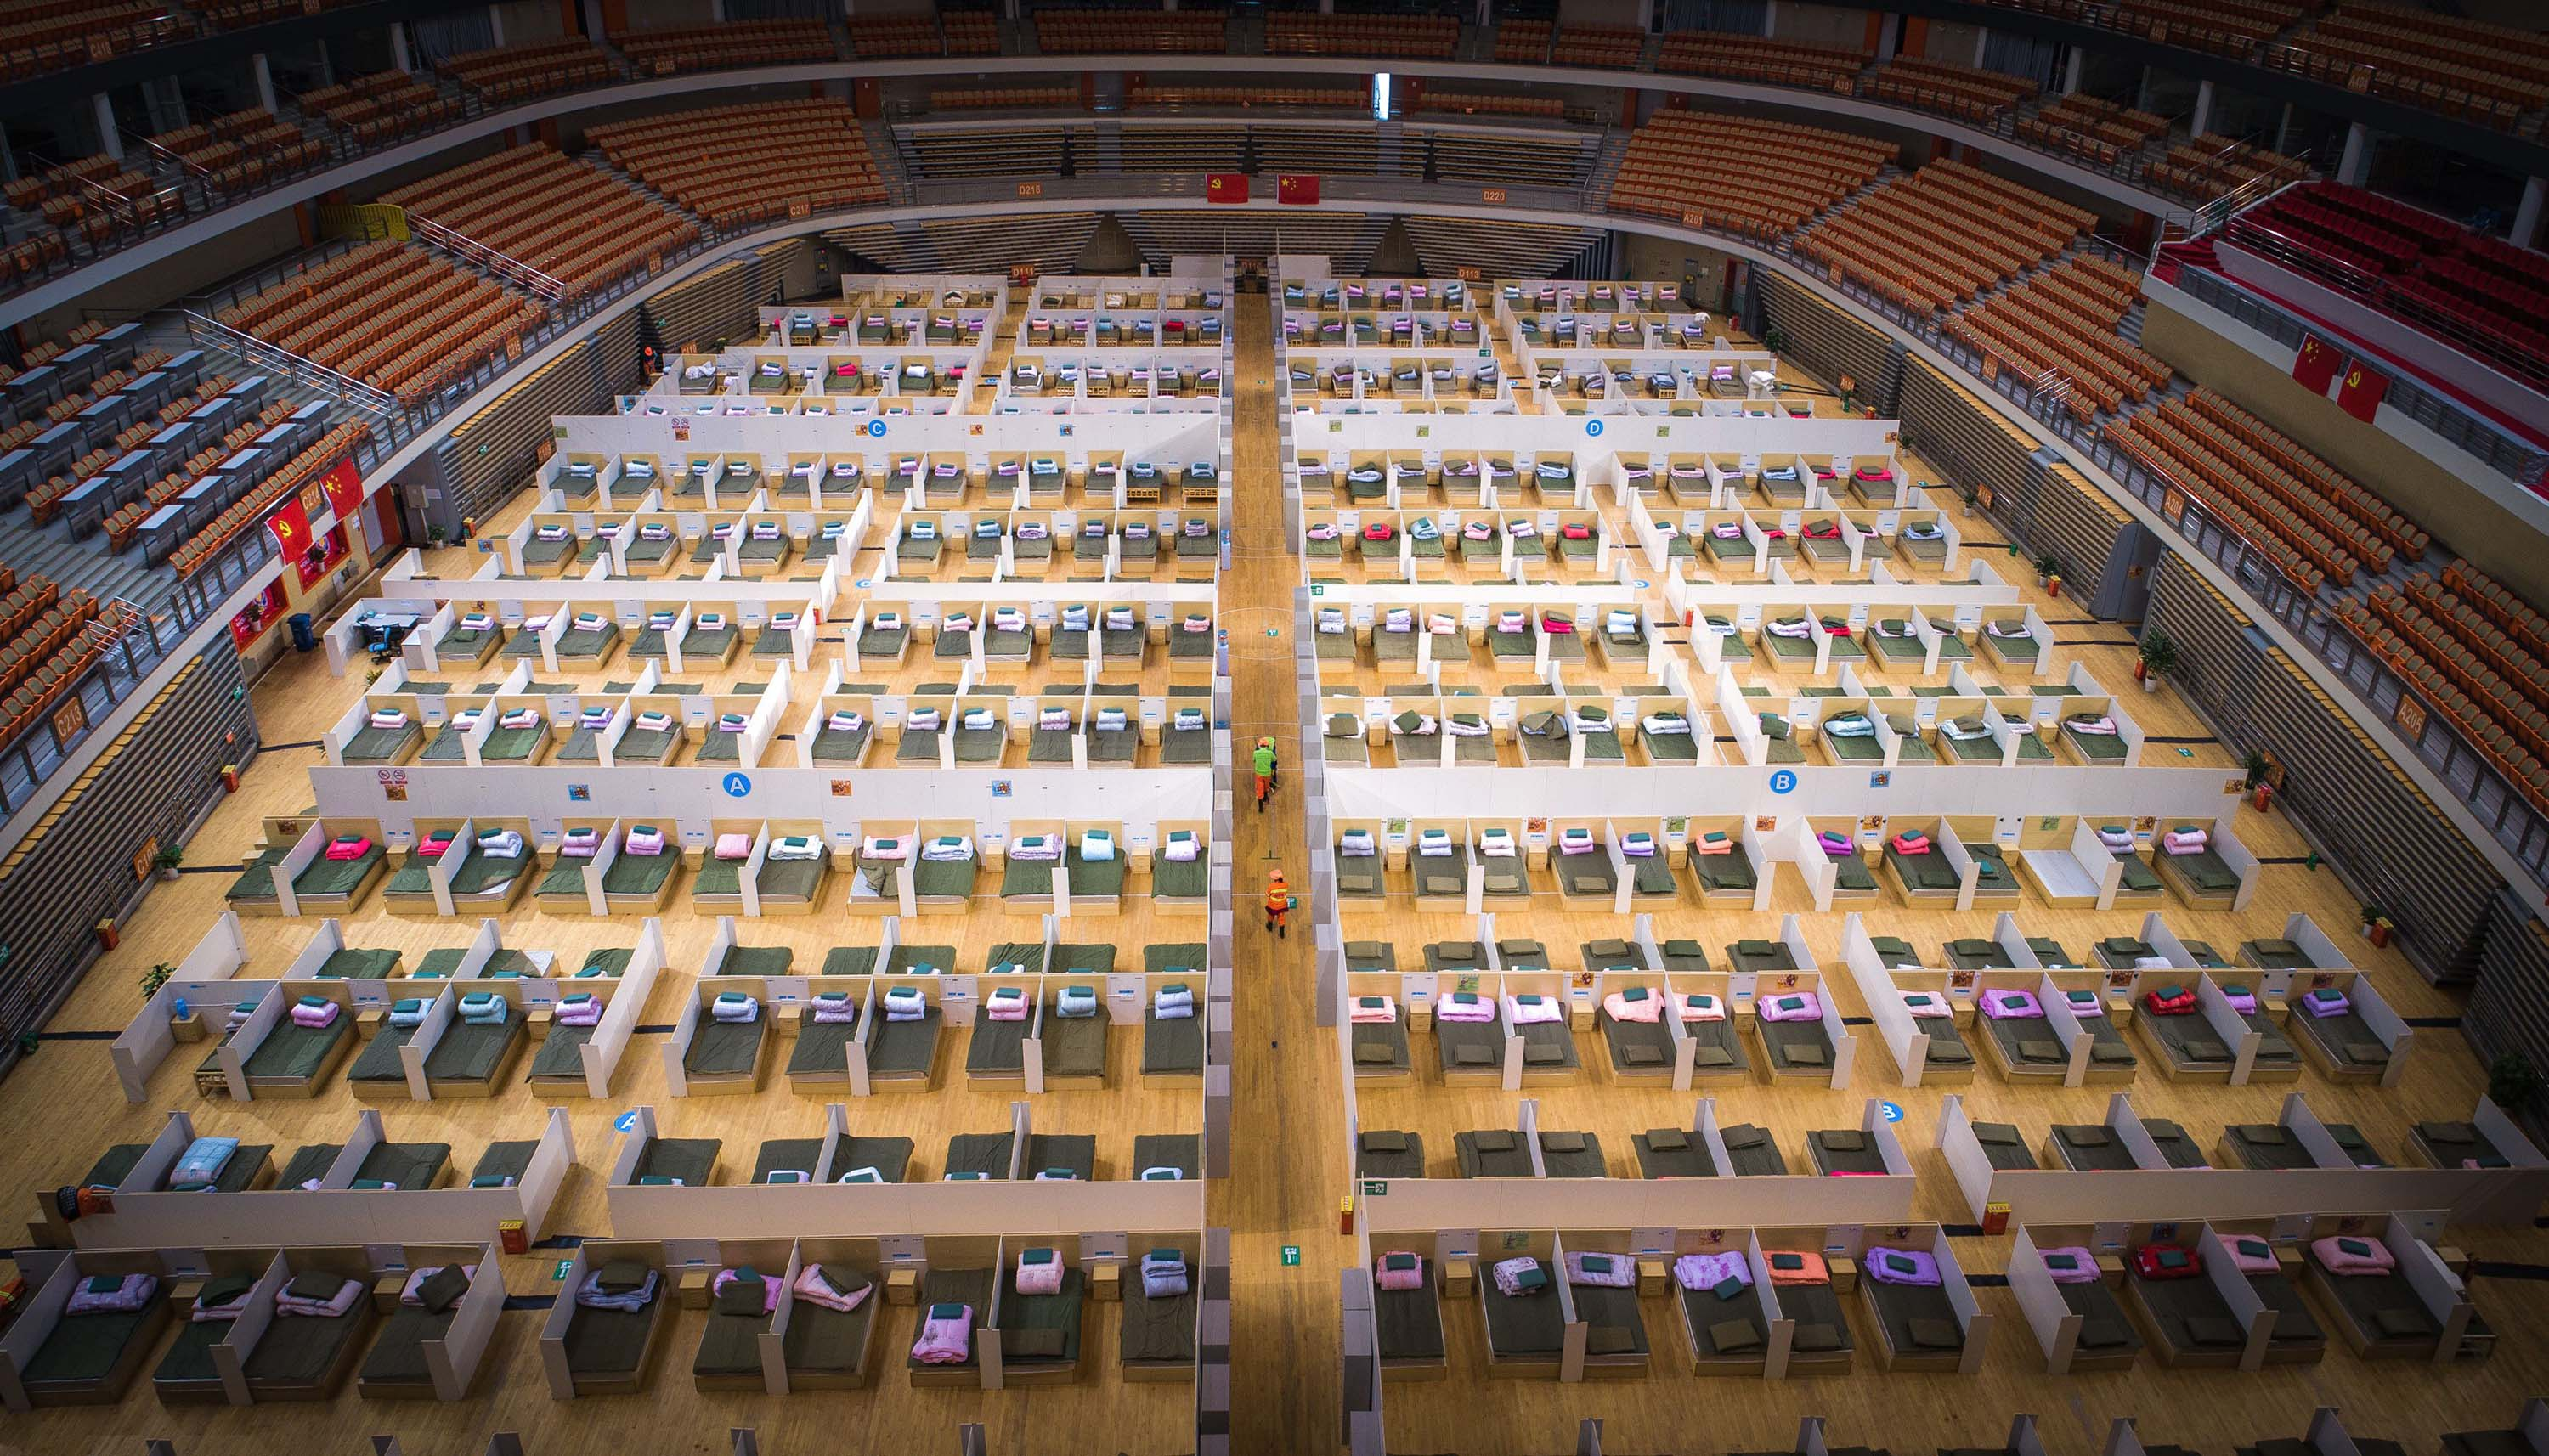 Beds are made in the Wuhan Sports Center, which has been converted into a temporary hospital in Wuhan, China.